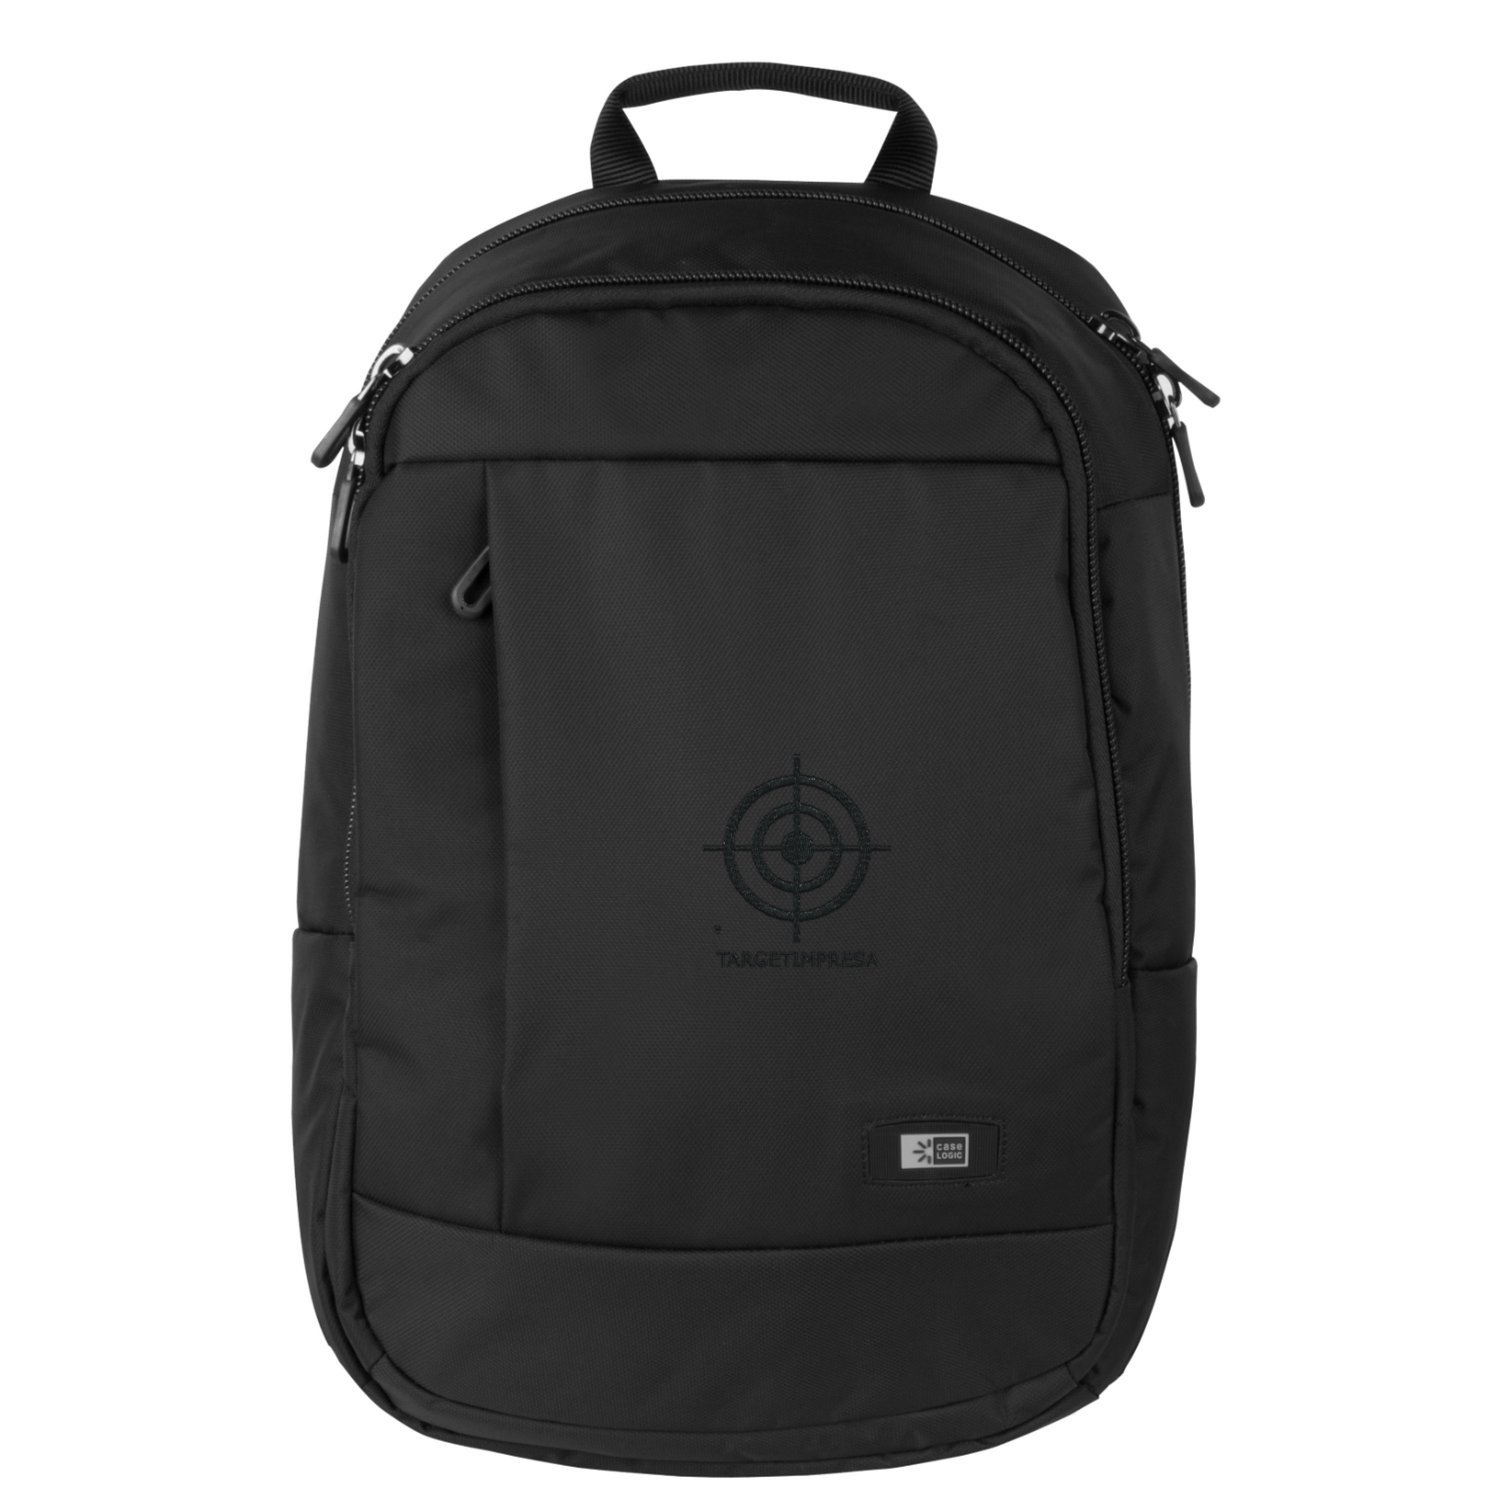 Backpack Target Adventure CaseLogic ®